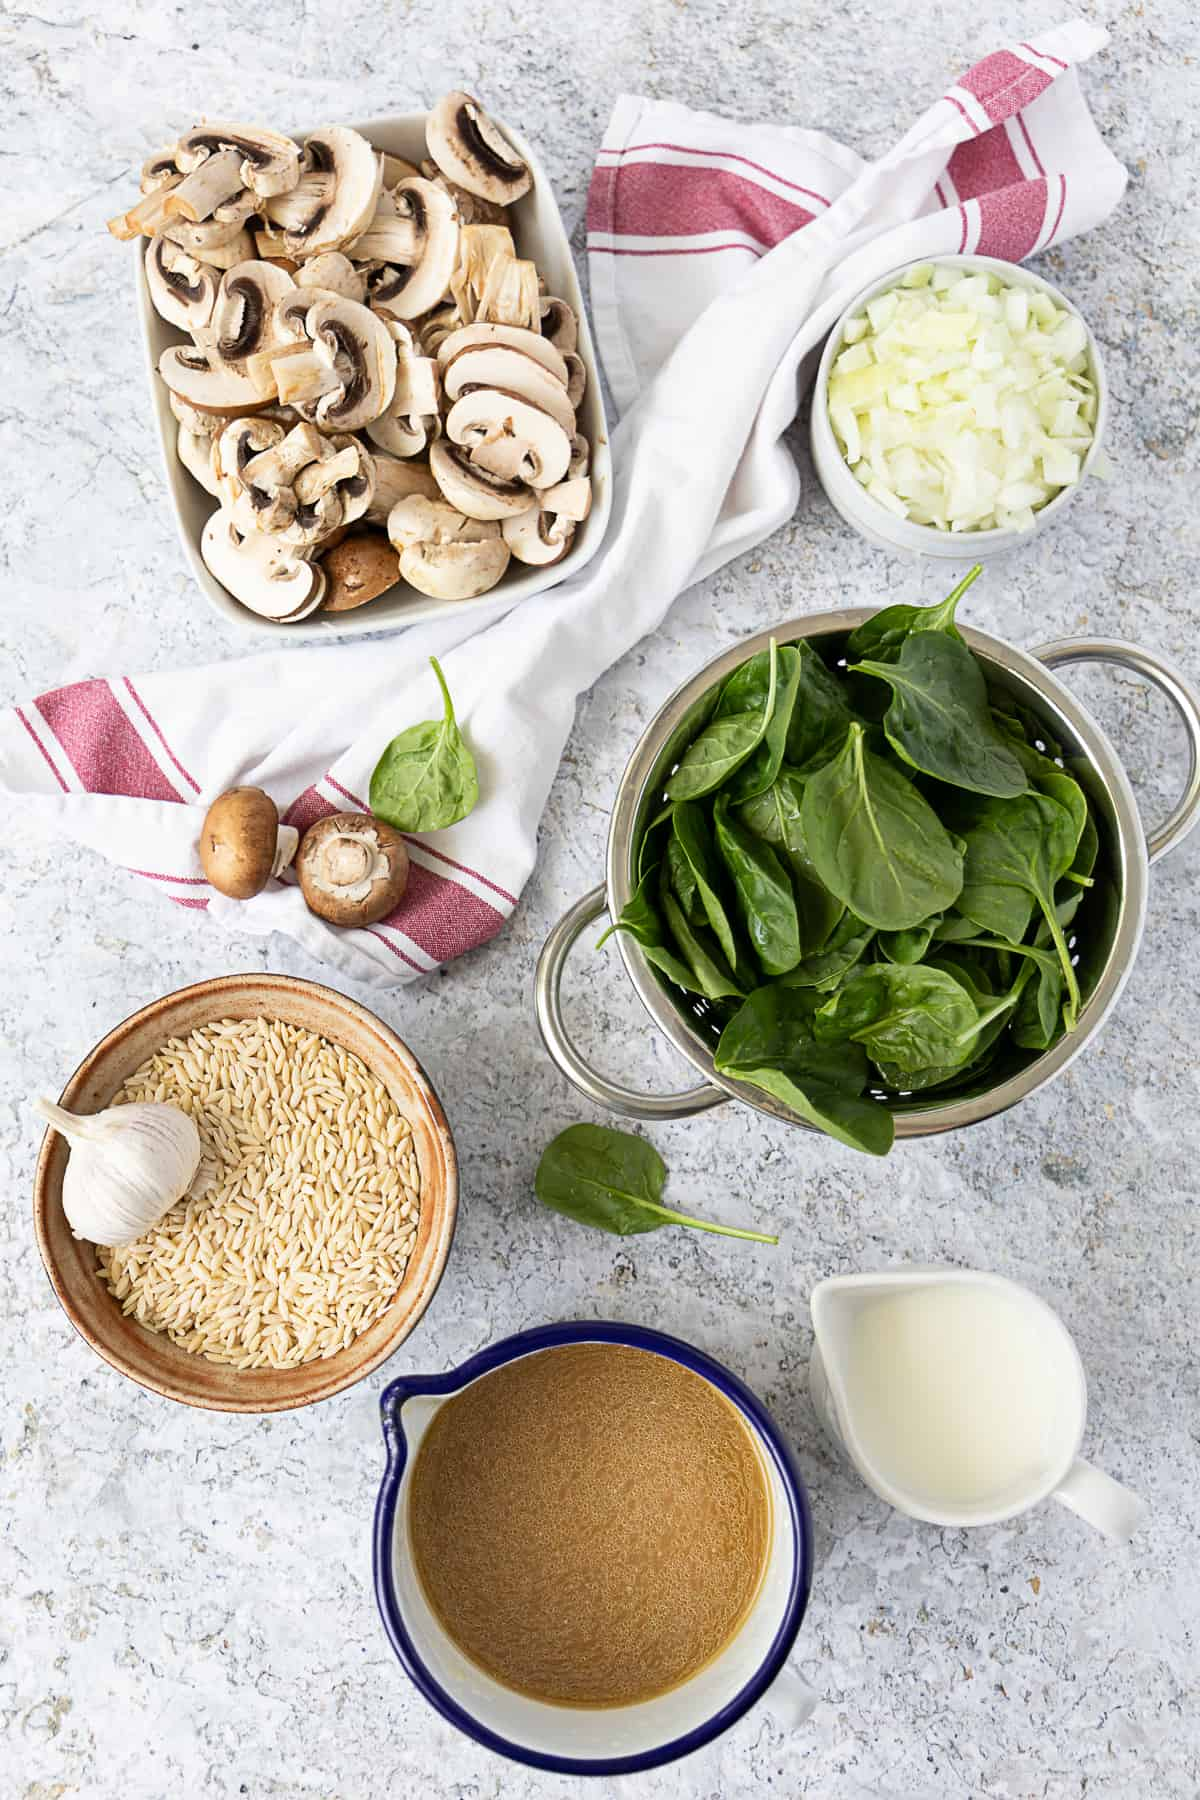 top view of ingredients for mushroom orzo: orzo, mushrooms, spinach, onion and garlic.